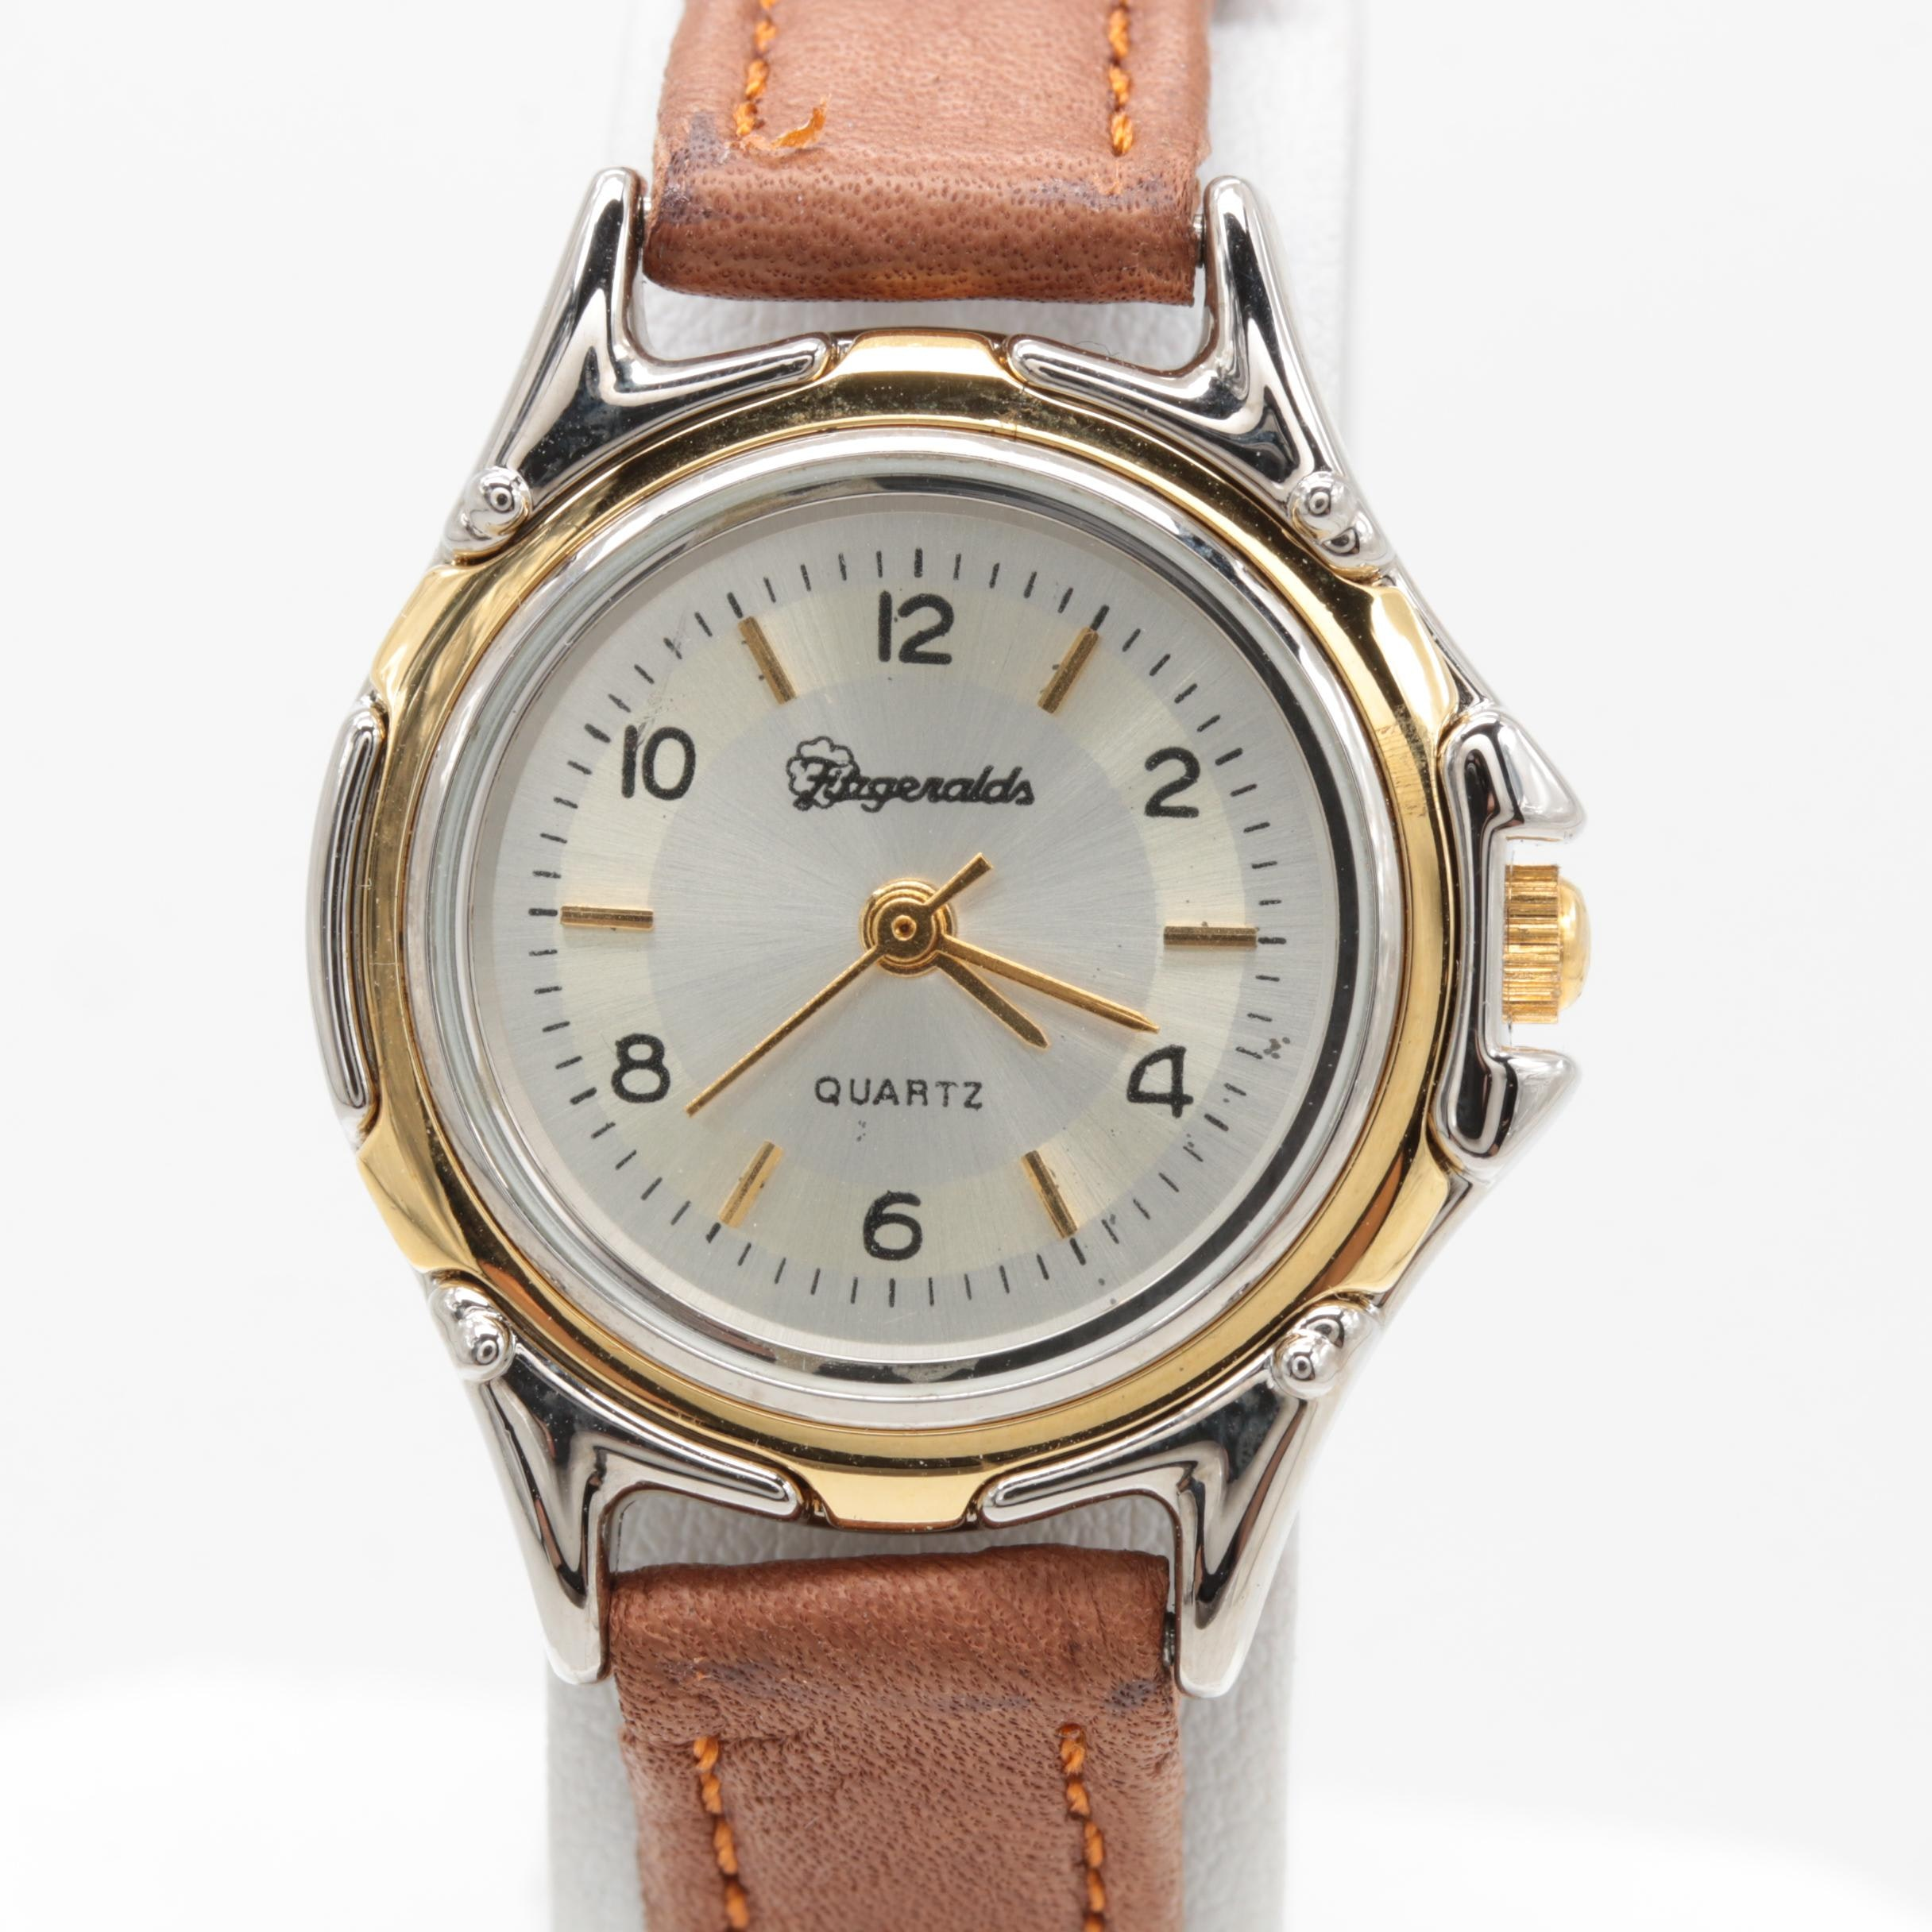 Fitzgeralds Casino Gold Tone and Stainless Steel Wristwatch with Leather Strap